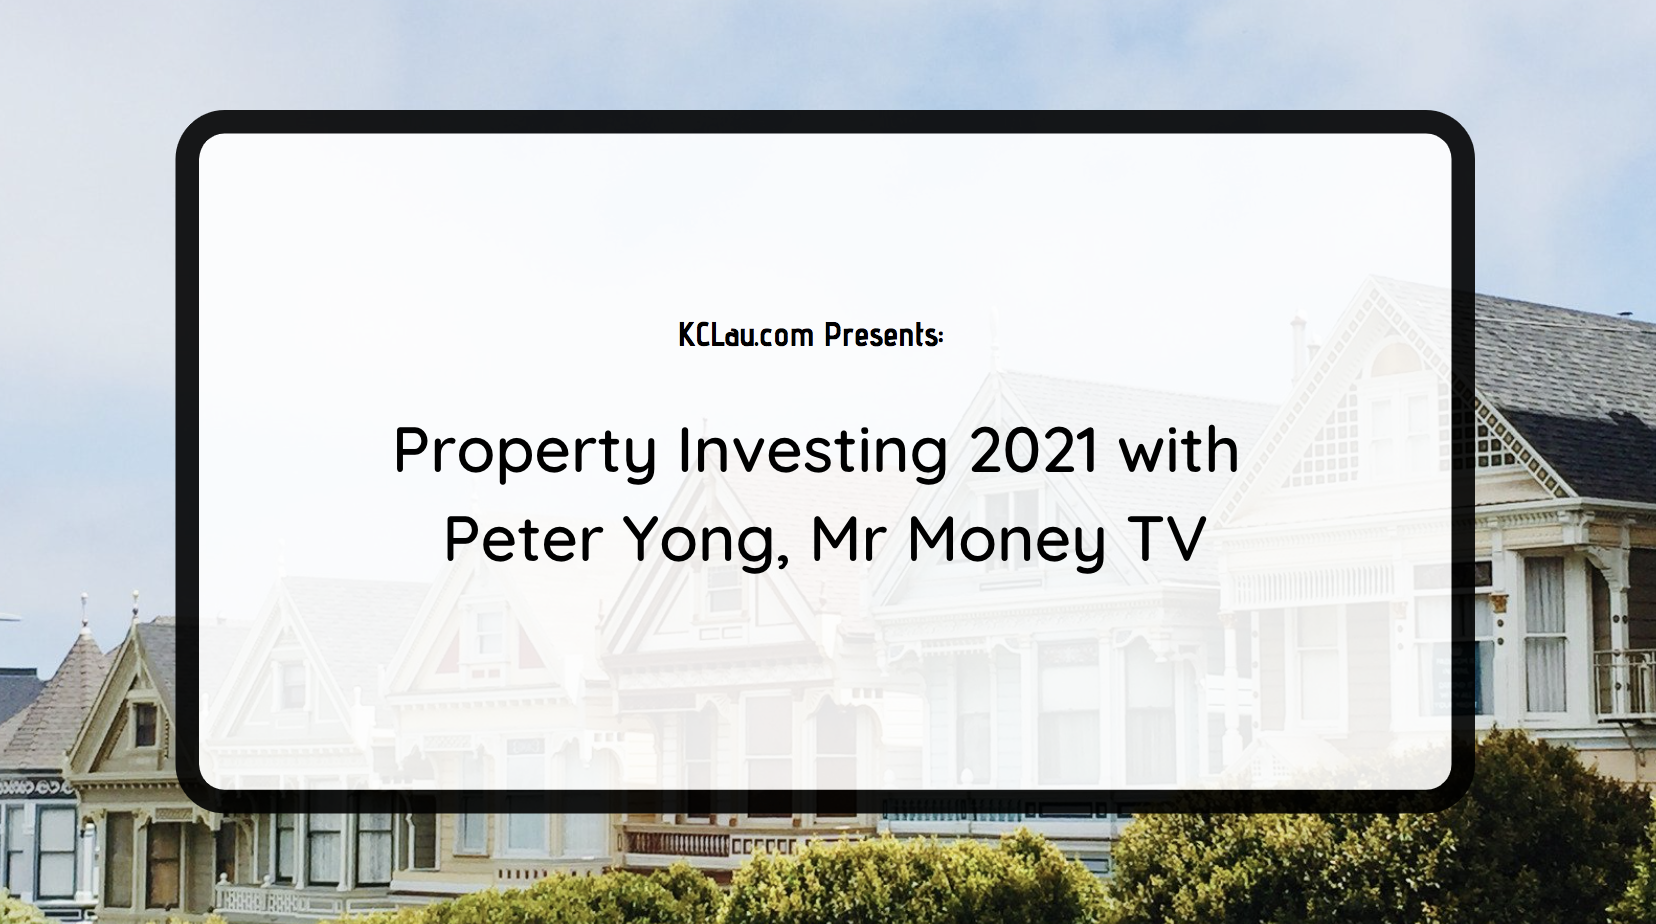 Property Investing 2021 with Peter Yong, Mr Money TV